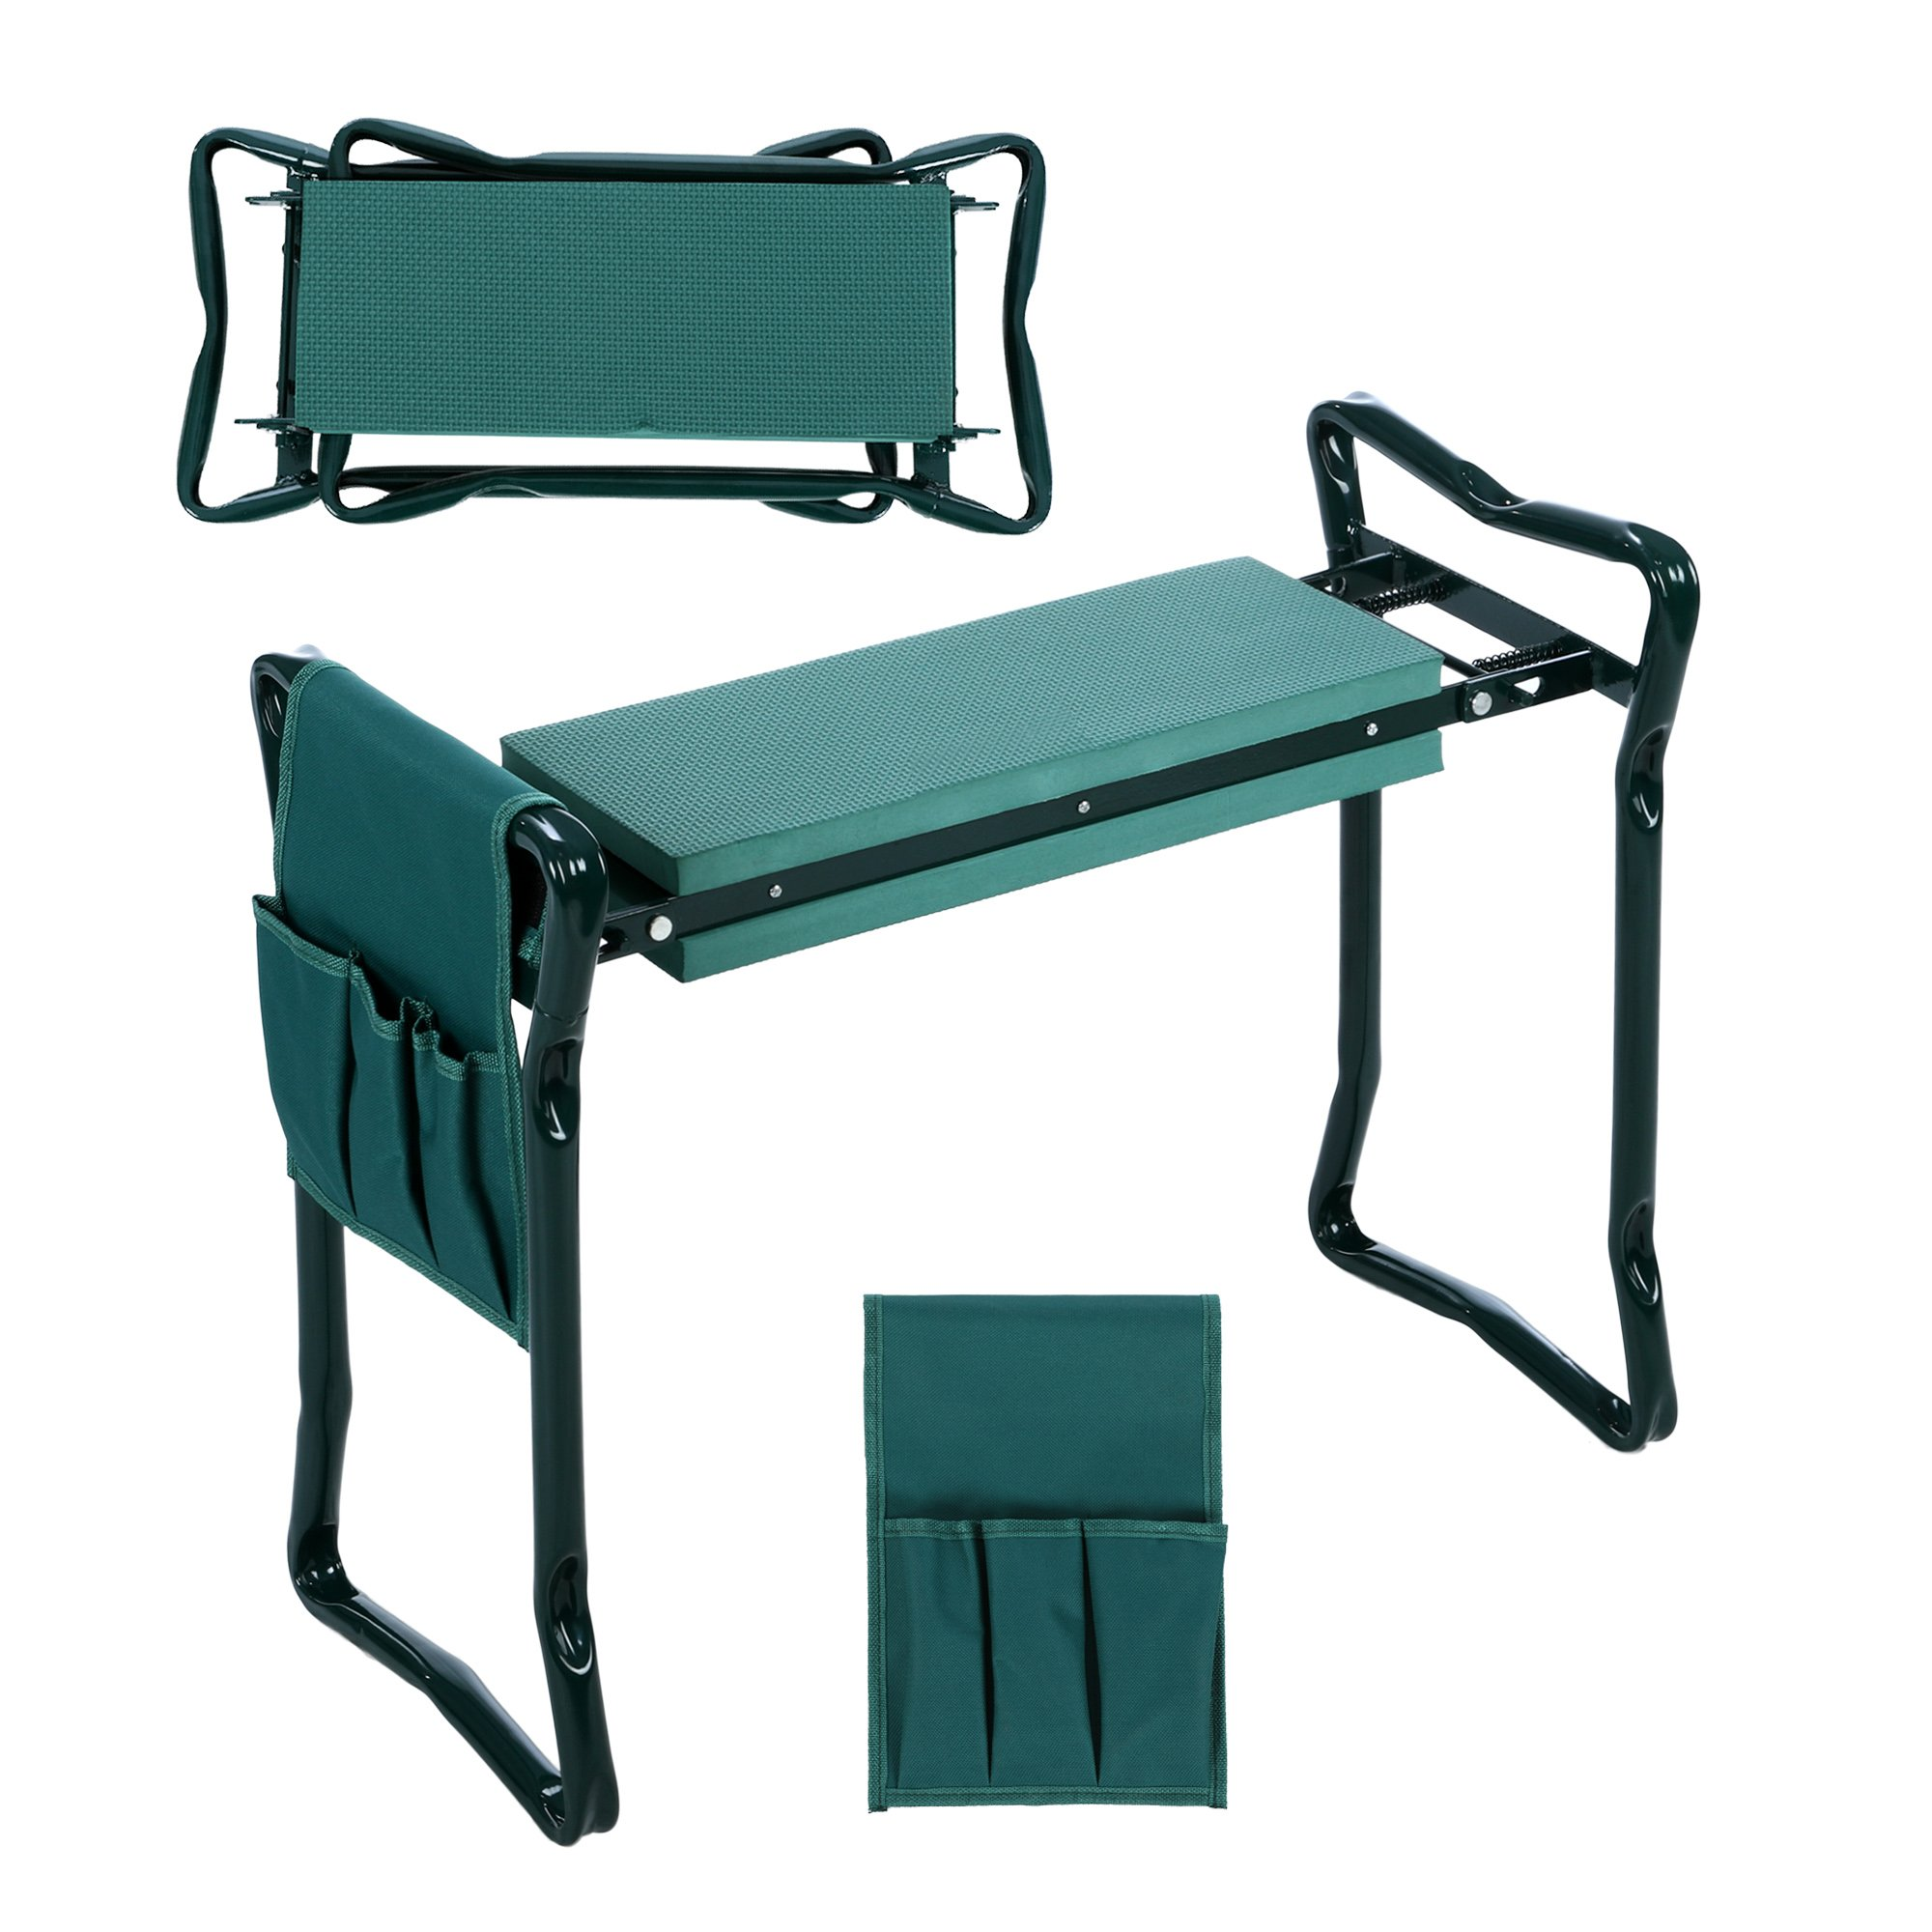 Meditool Folding Garden Kneeler and Seat with Bonus Tool Pouch, Portable Stool with EVA Soft Foam Padding (green pad)